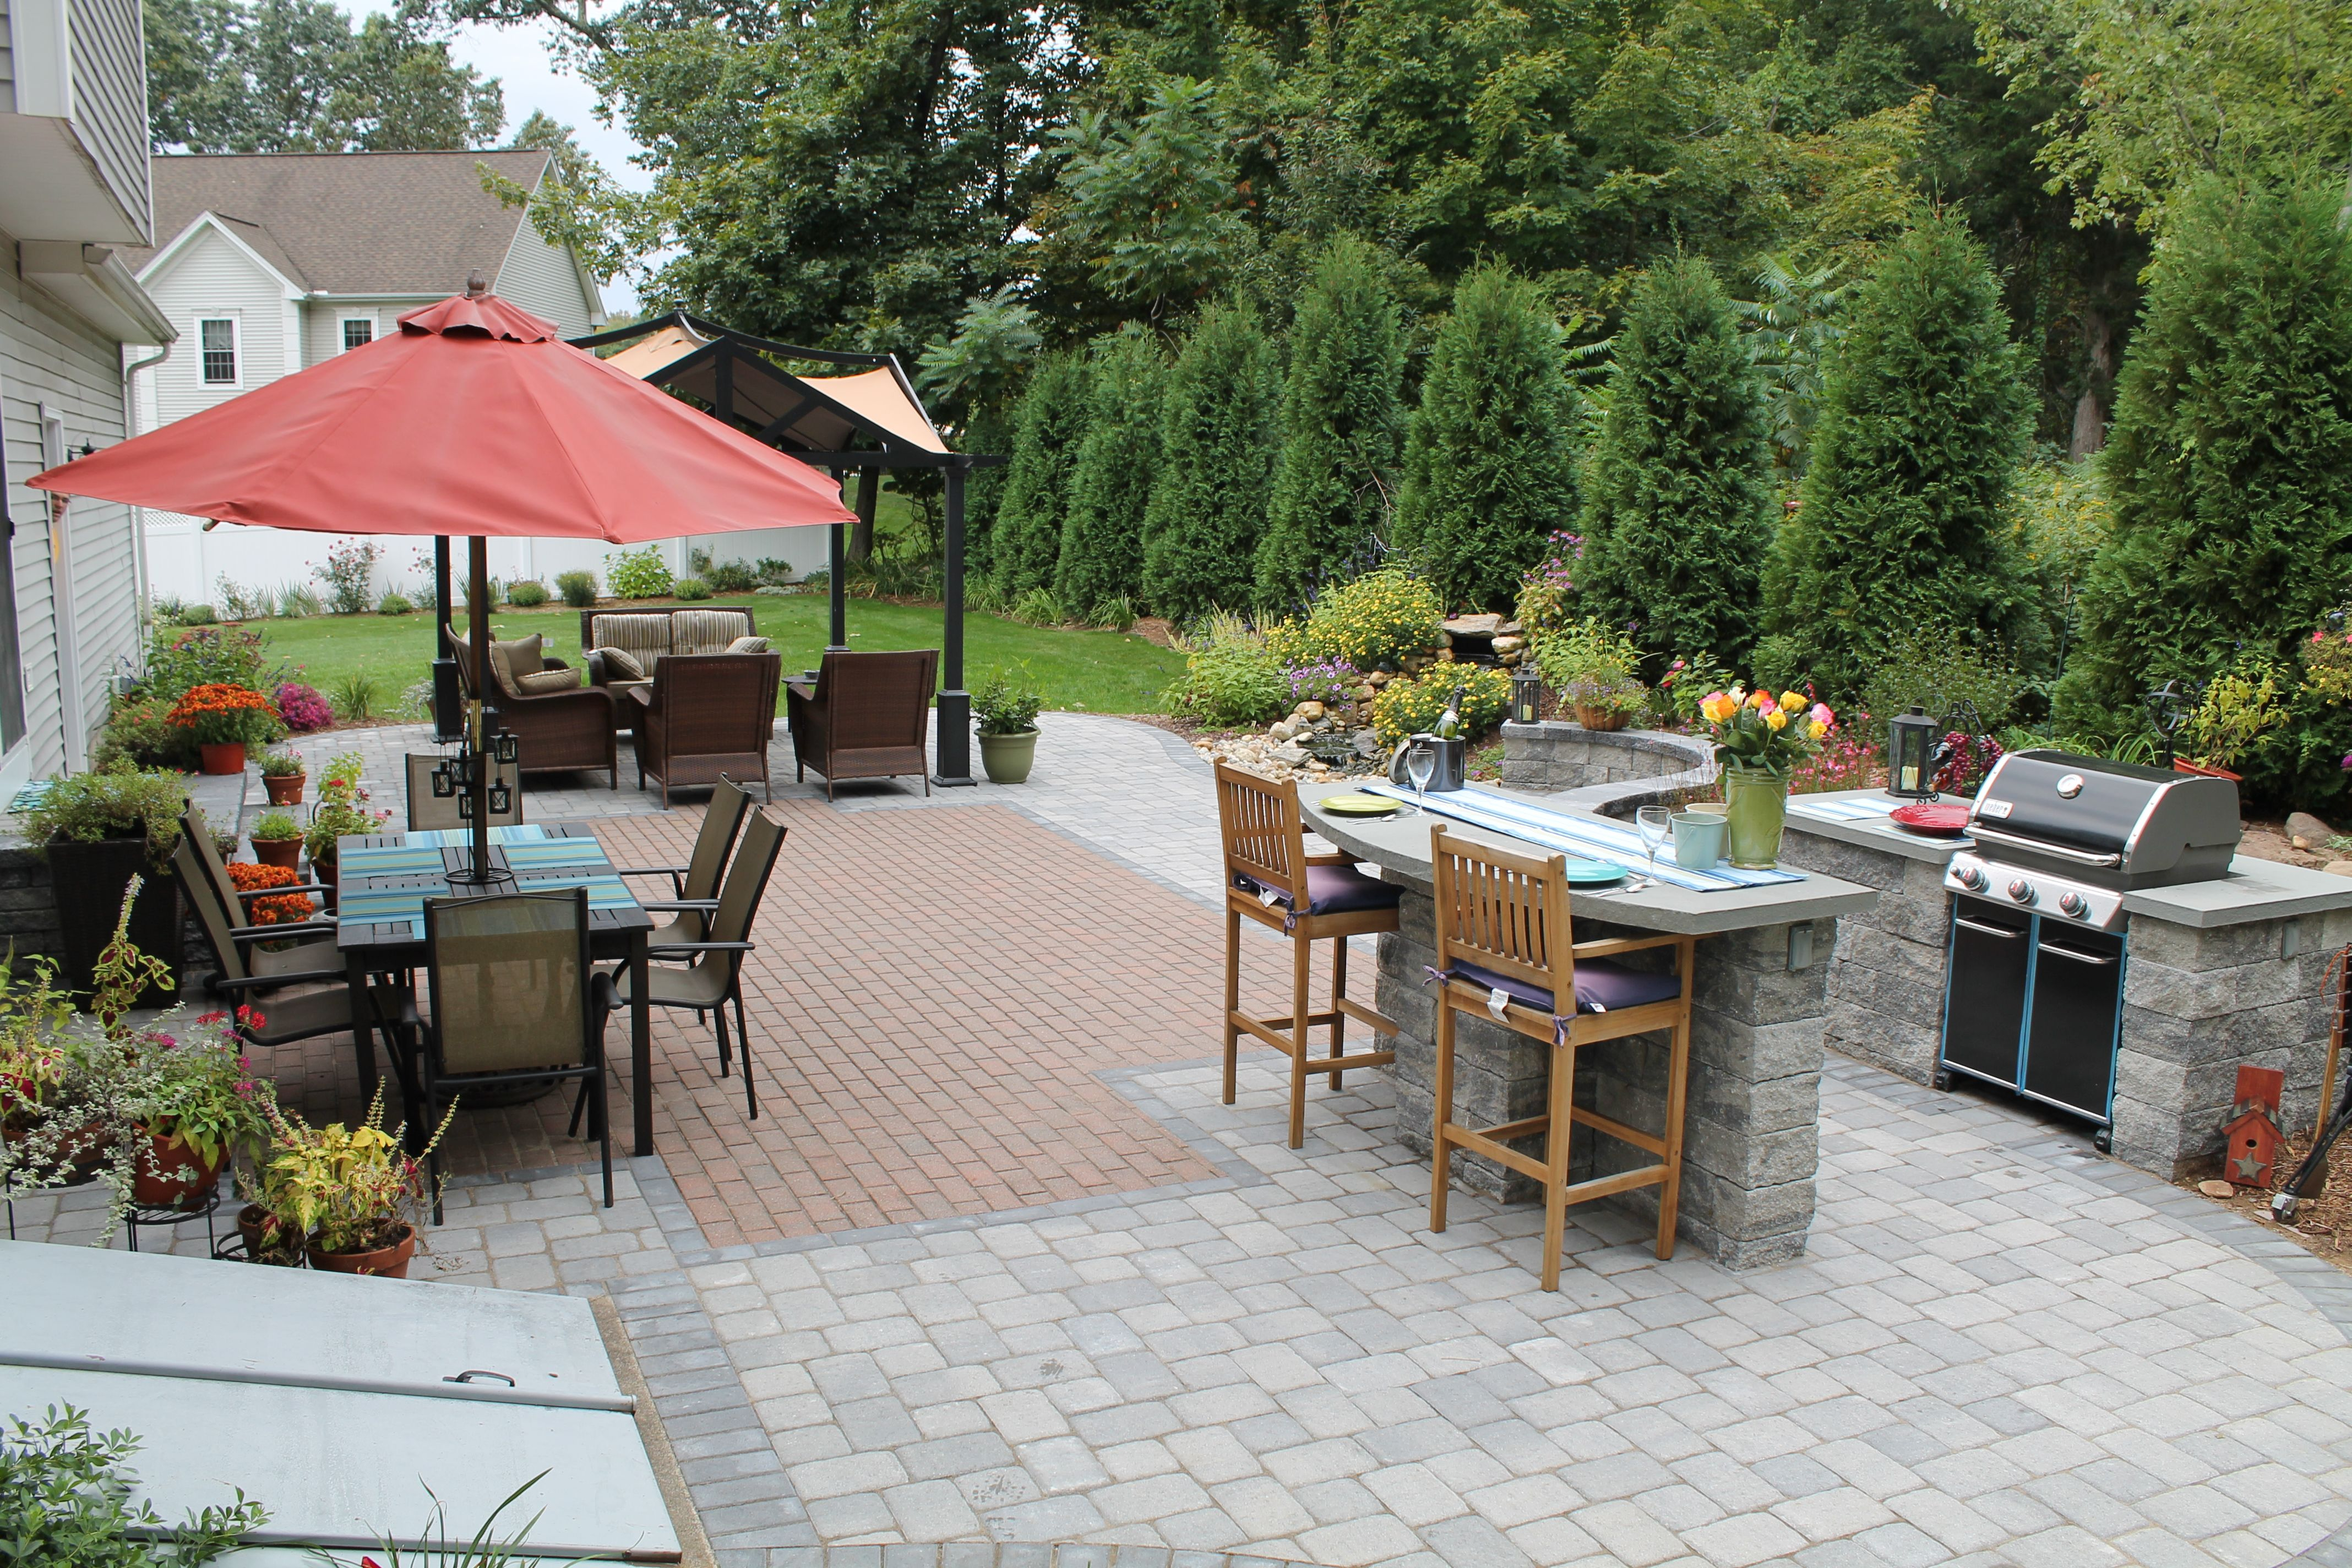 Expand Your Living Space Outside By Installing An Outdoor Kitchen Or Bar  Area For Entertaining Outdoors! Photo Gallery